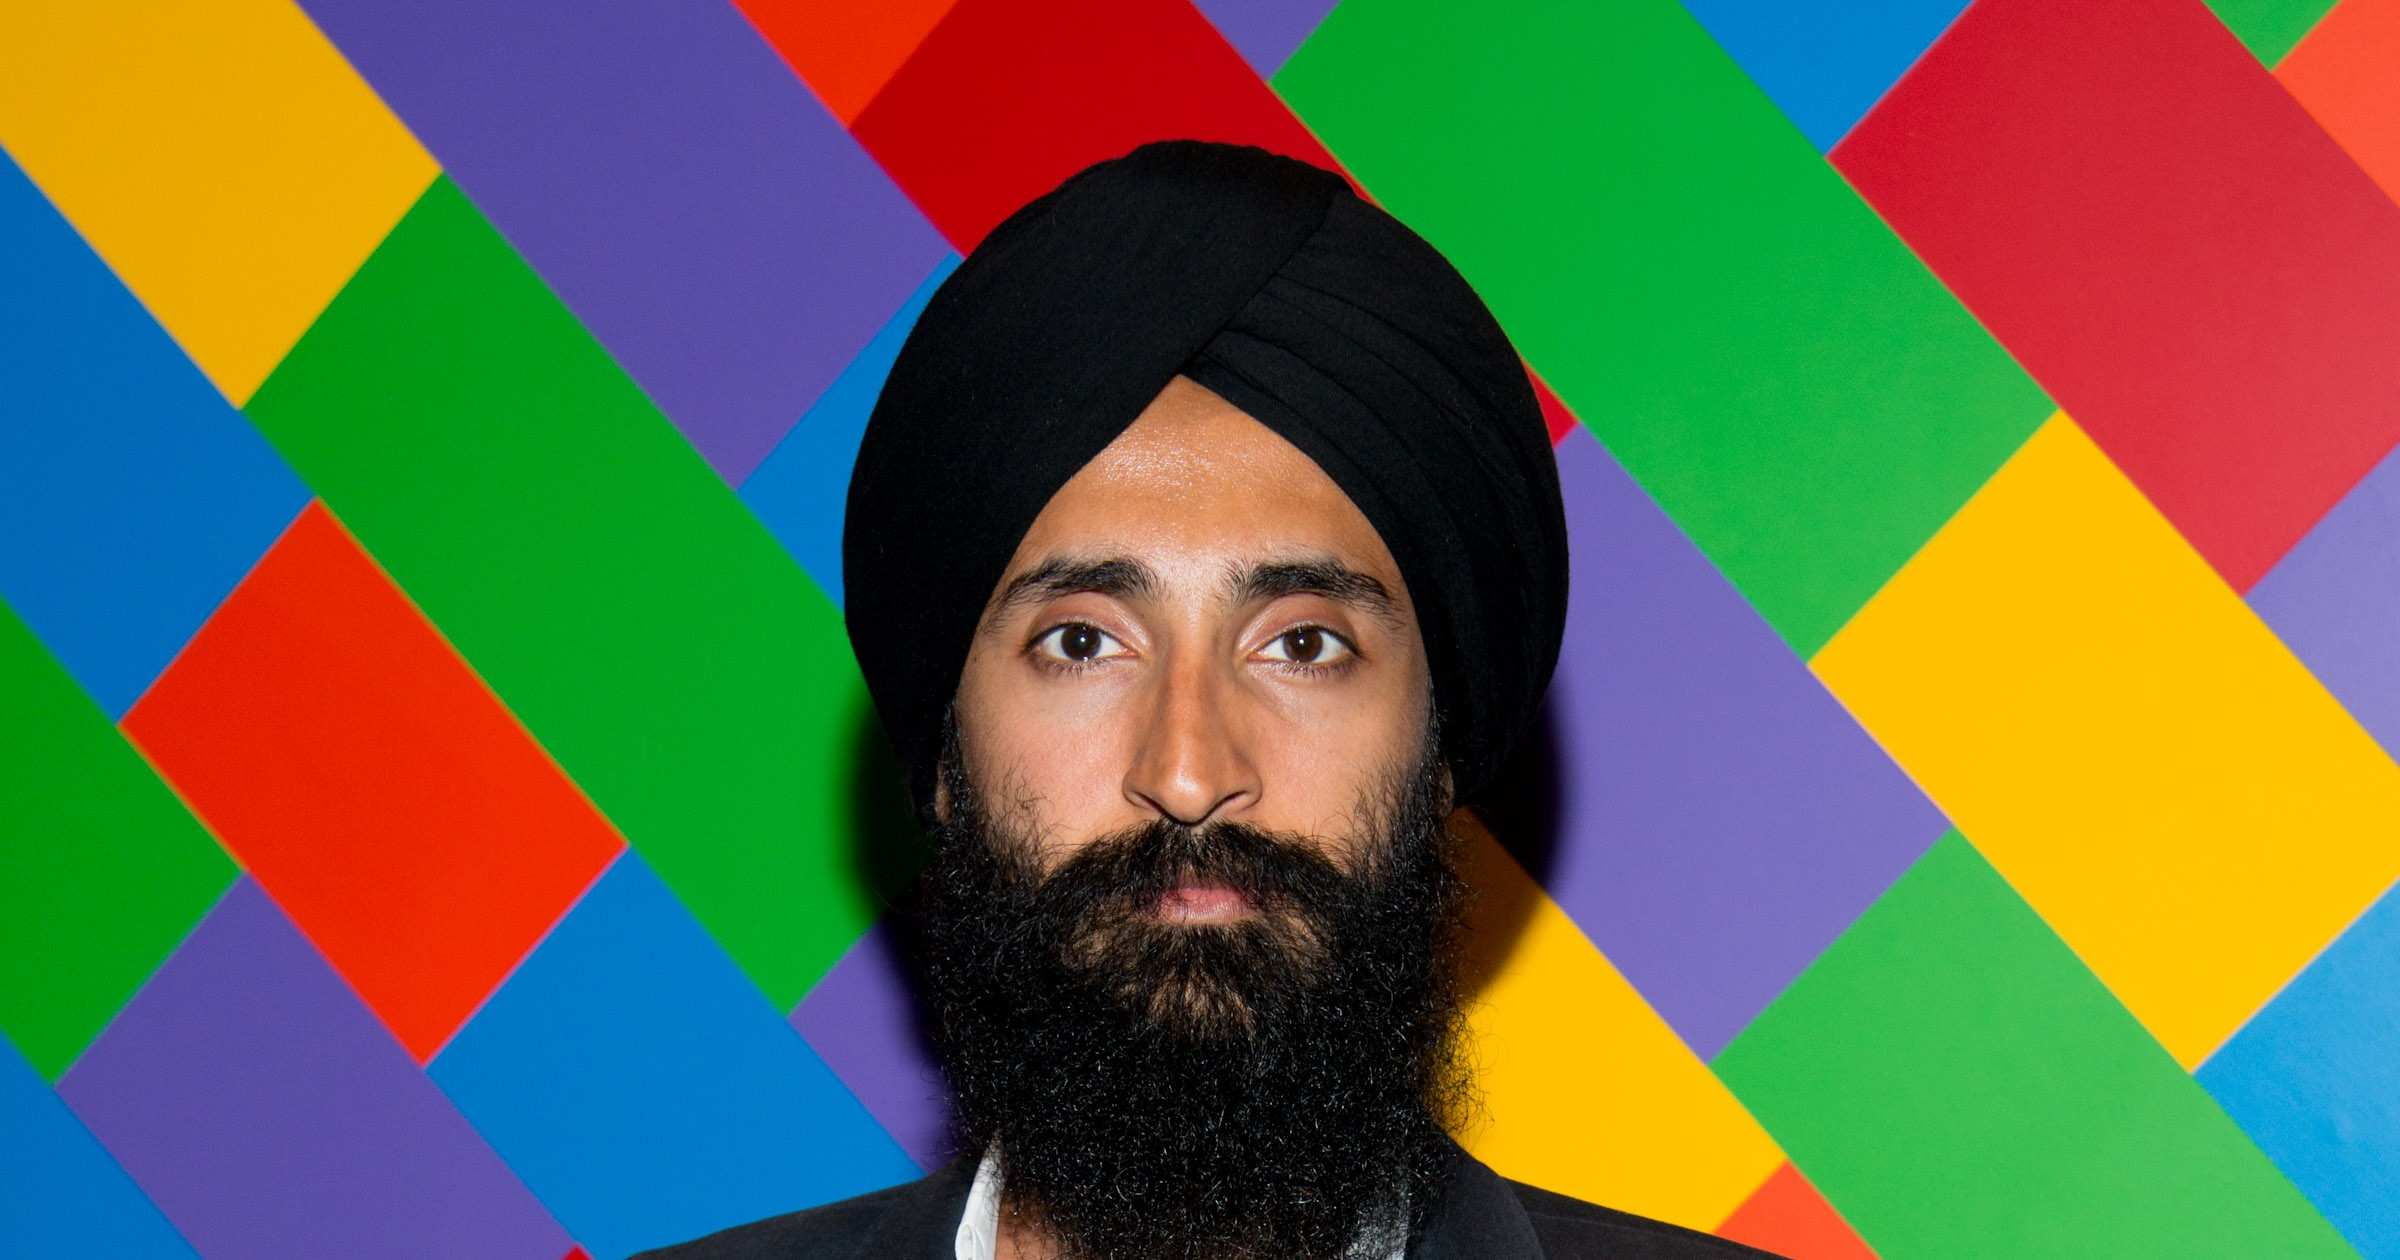 Good Quality Waris Ahluwalia  HD Wallpaper Wallpaper